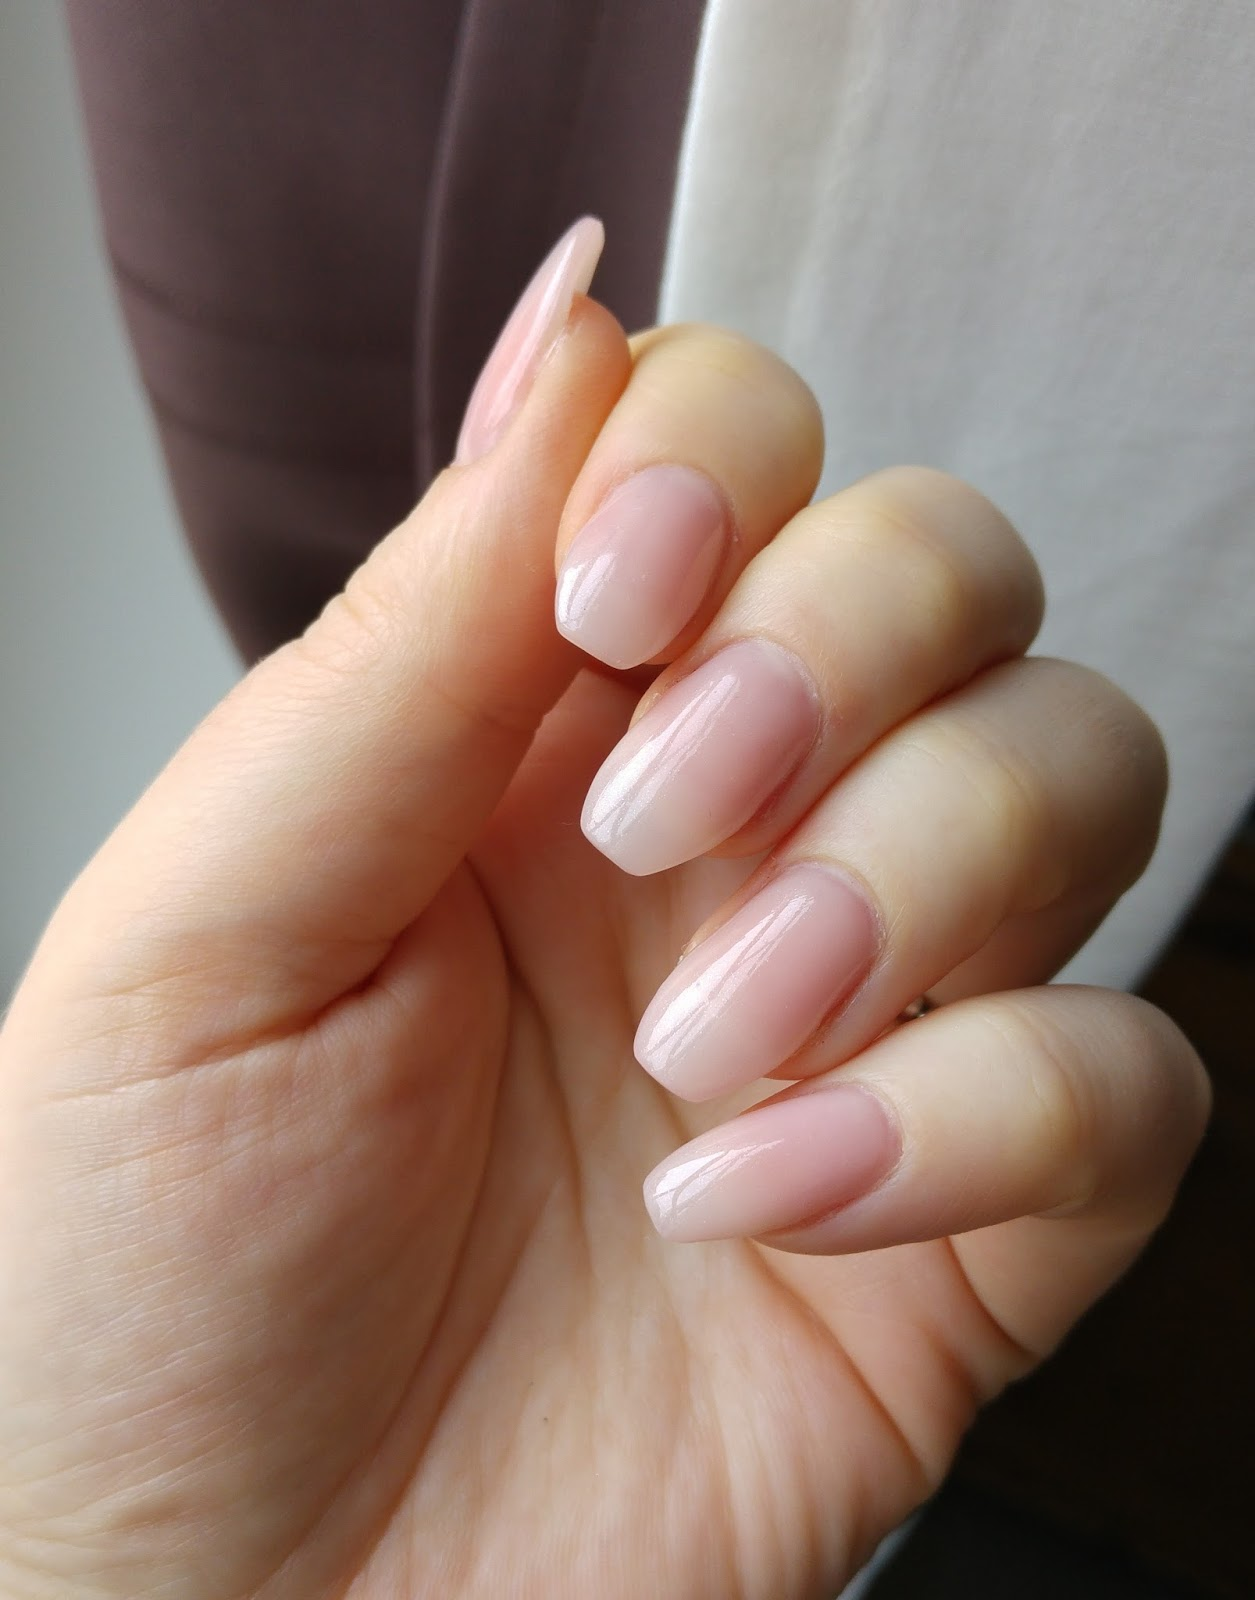 The life in front of my eyes: New nails